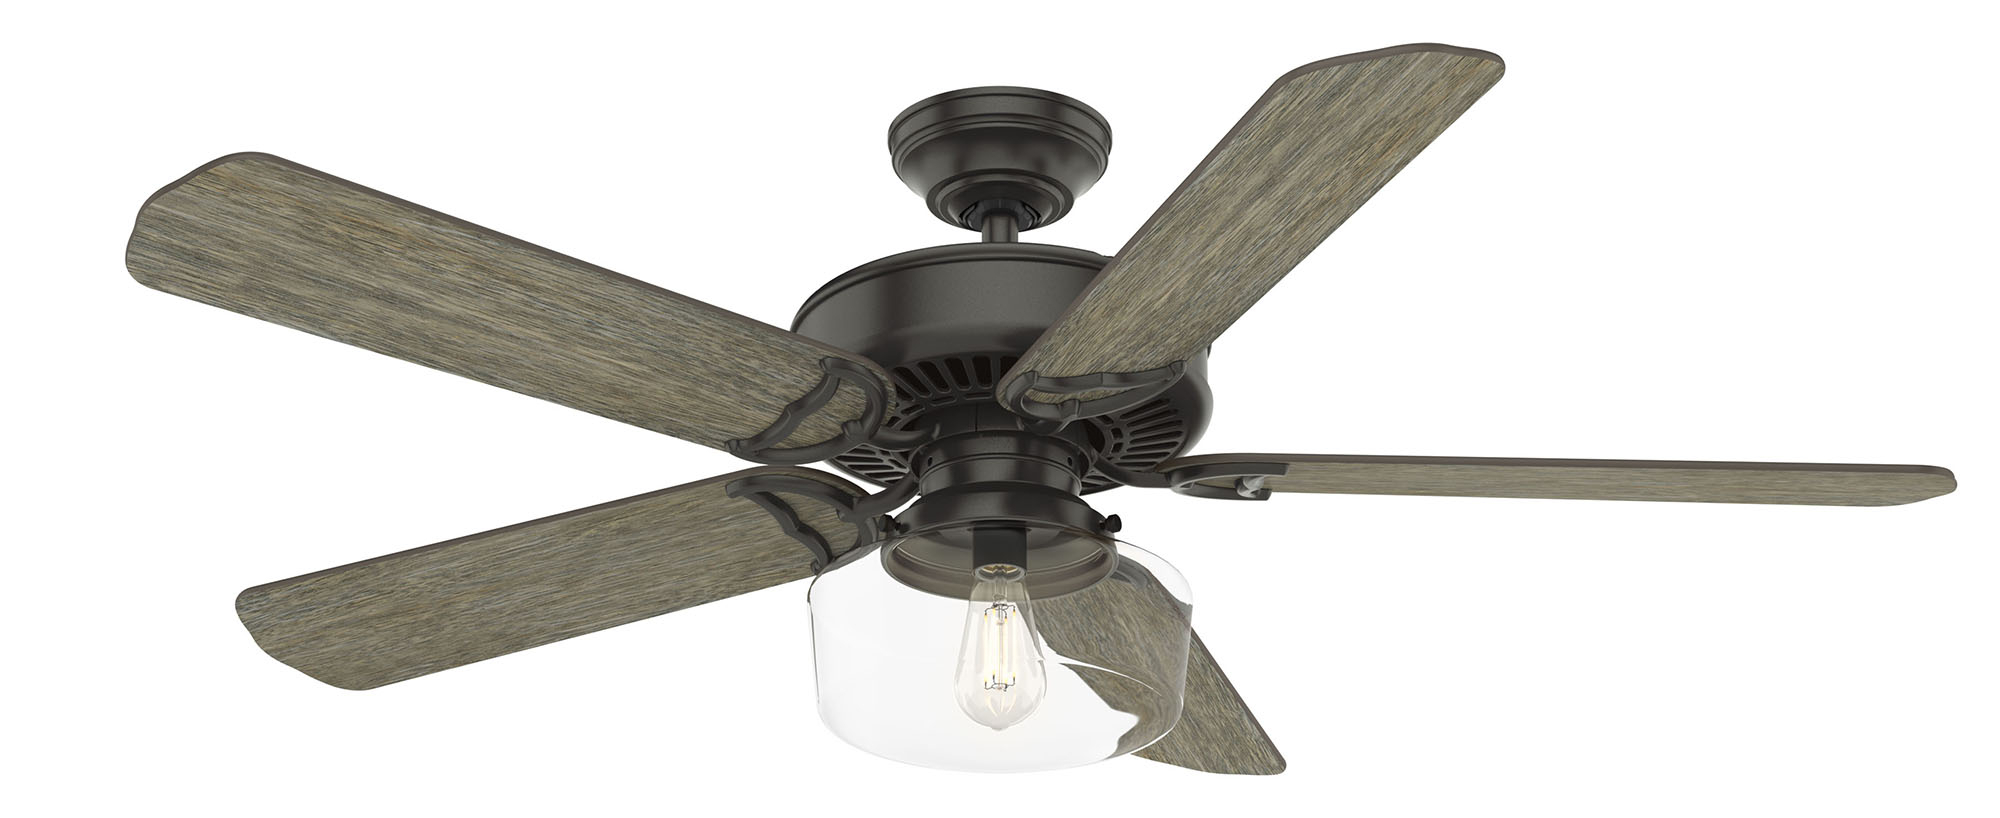 Casablanca Intended For Timeless 5 Blade Ceiling Fans (View 15 of 20)